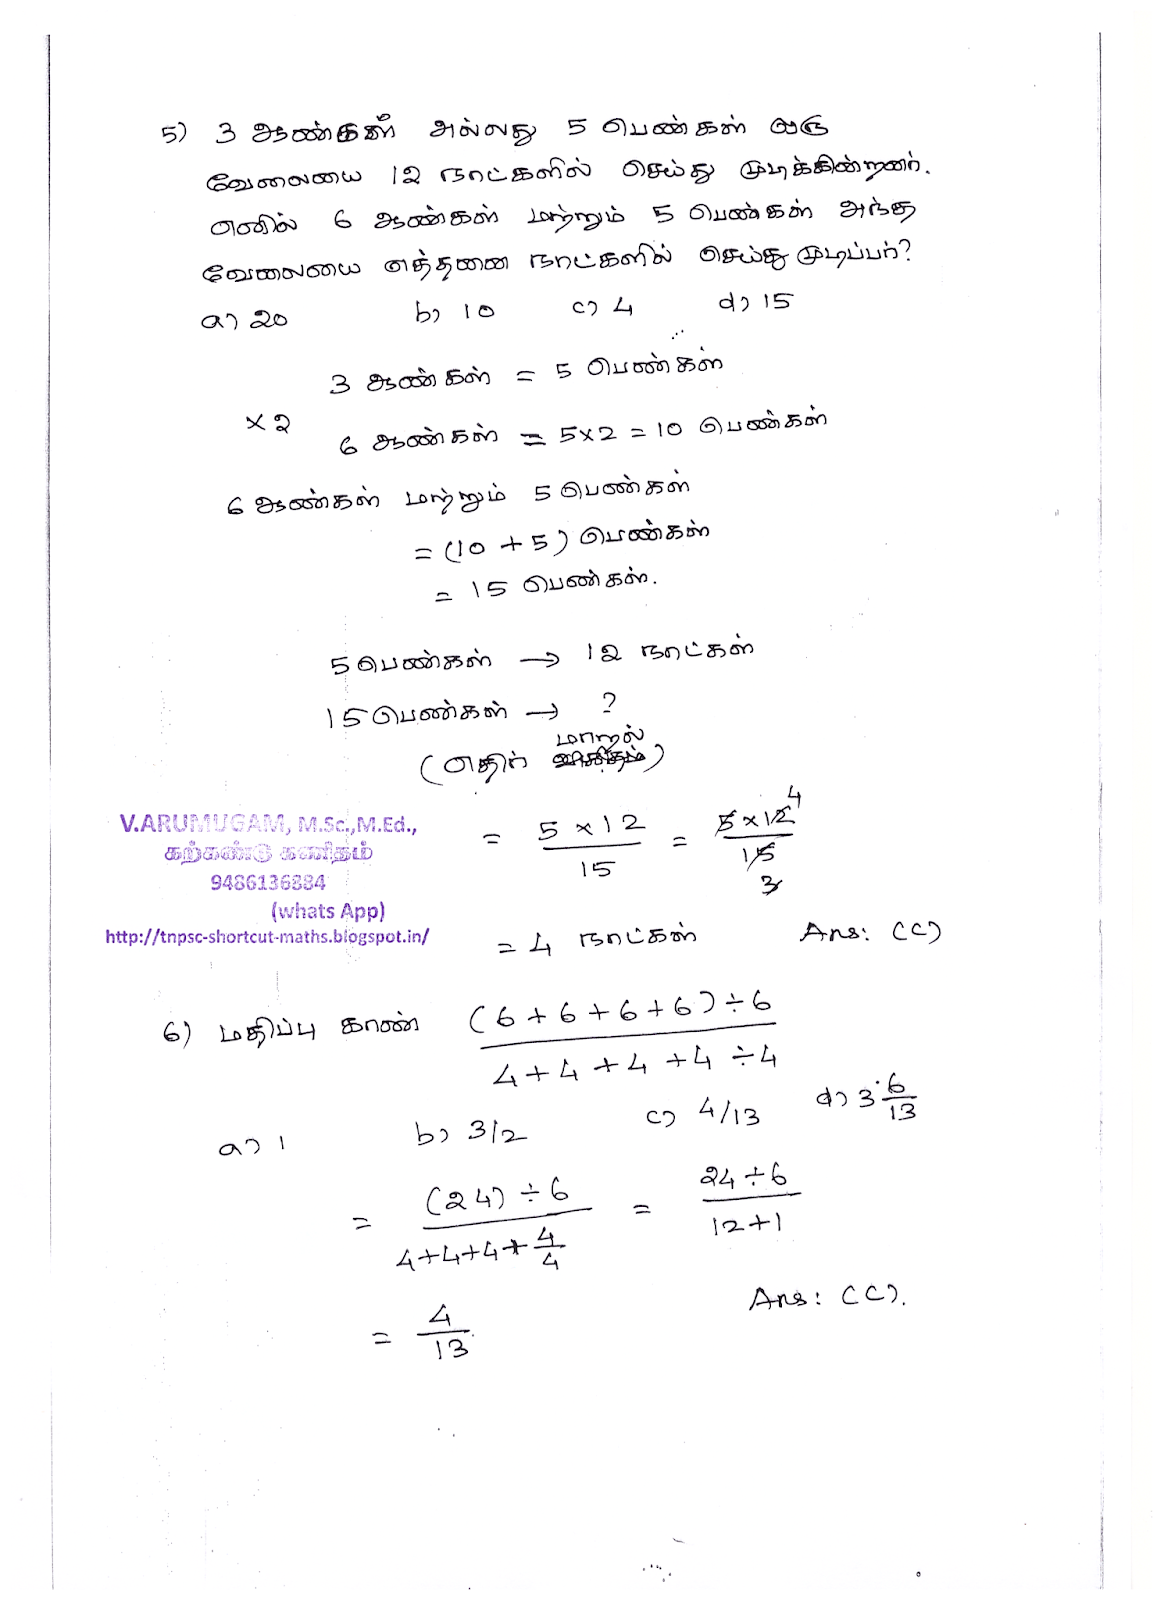 TNPSC-2018-Q-06-Laboratory Assistant in Forensic Science Department in the Tamil Nadu Forensic Sciences Subordinate Service, 2016-2018 EXAMINATION-EXAM DATE: 06.05.2018